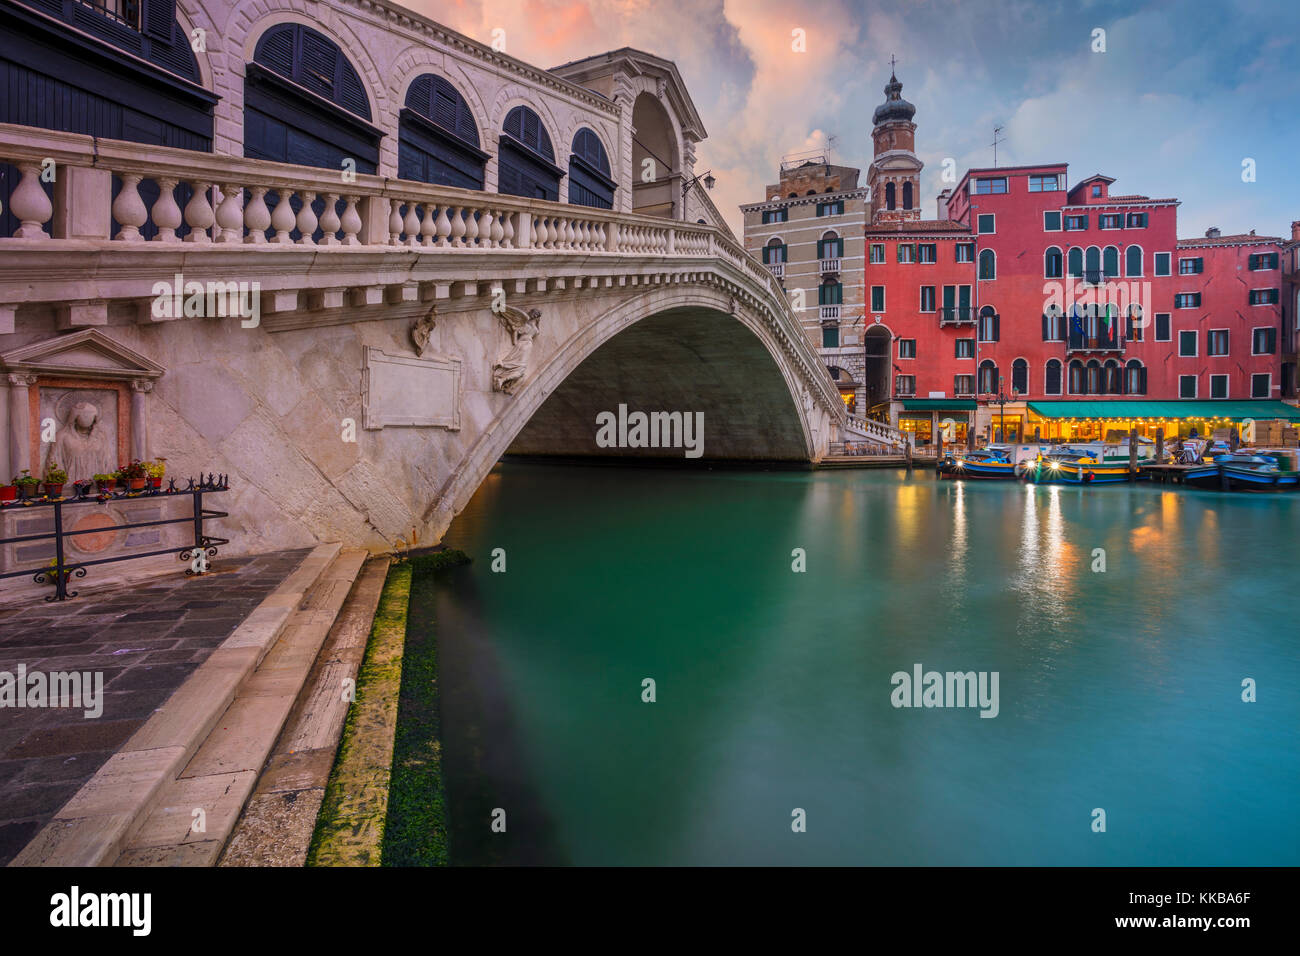 Venice. Cityscape image of Venice with famous Rialto Bridge and Grand Canal. - Stock Image